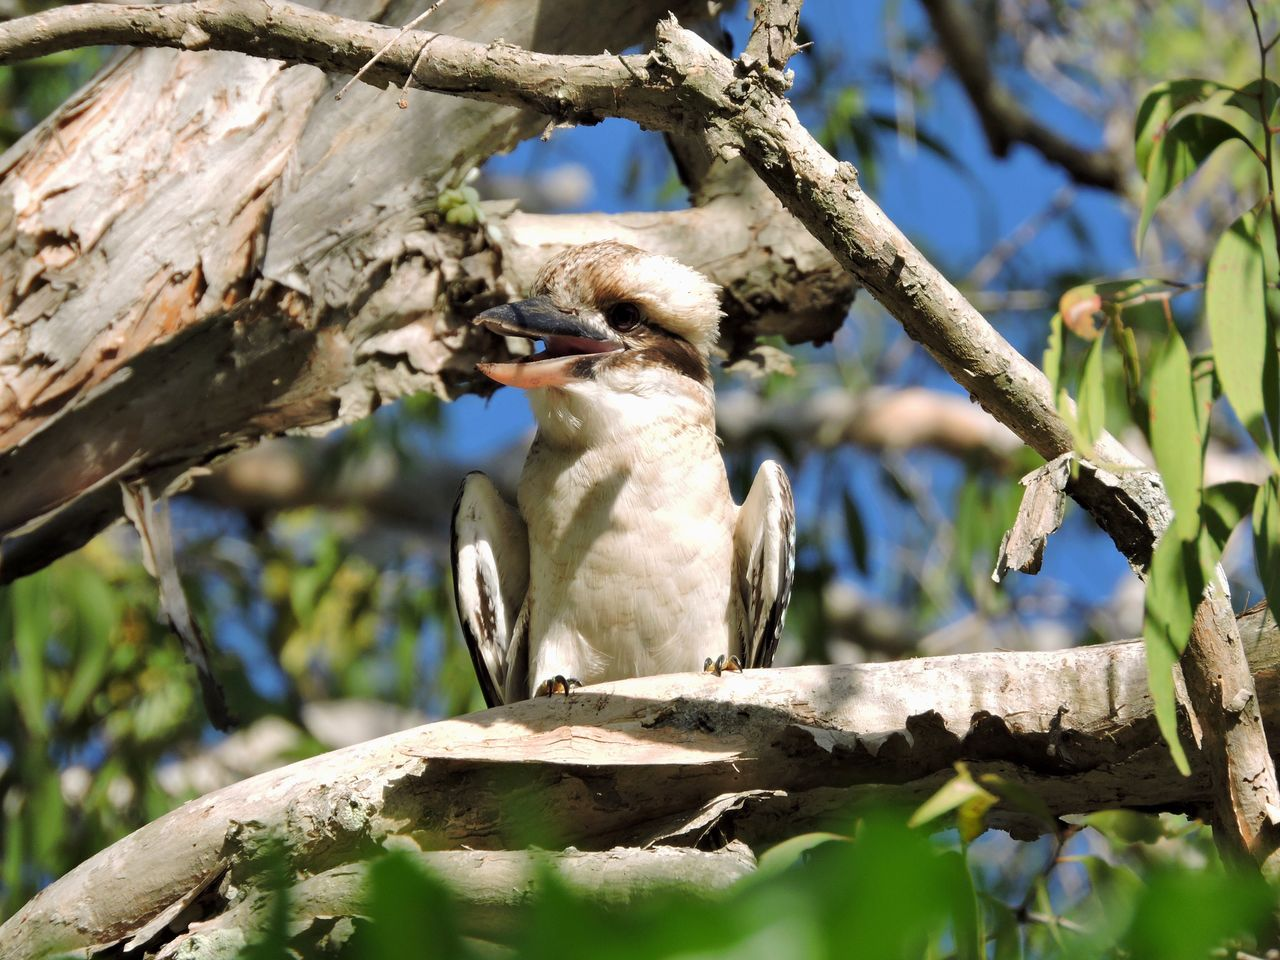 Laughing Kookaburra Australian Australia Bird One Animal Animal Themes Animals In The Wild Animal Wildlife Tree Perching Nature Branch Tree Trunk Day No People Outdoors Close-up Wildlife Predator Wildlife & Nature Bird Photography Beauty In Nature Wildlife Photography Sky